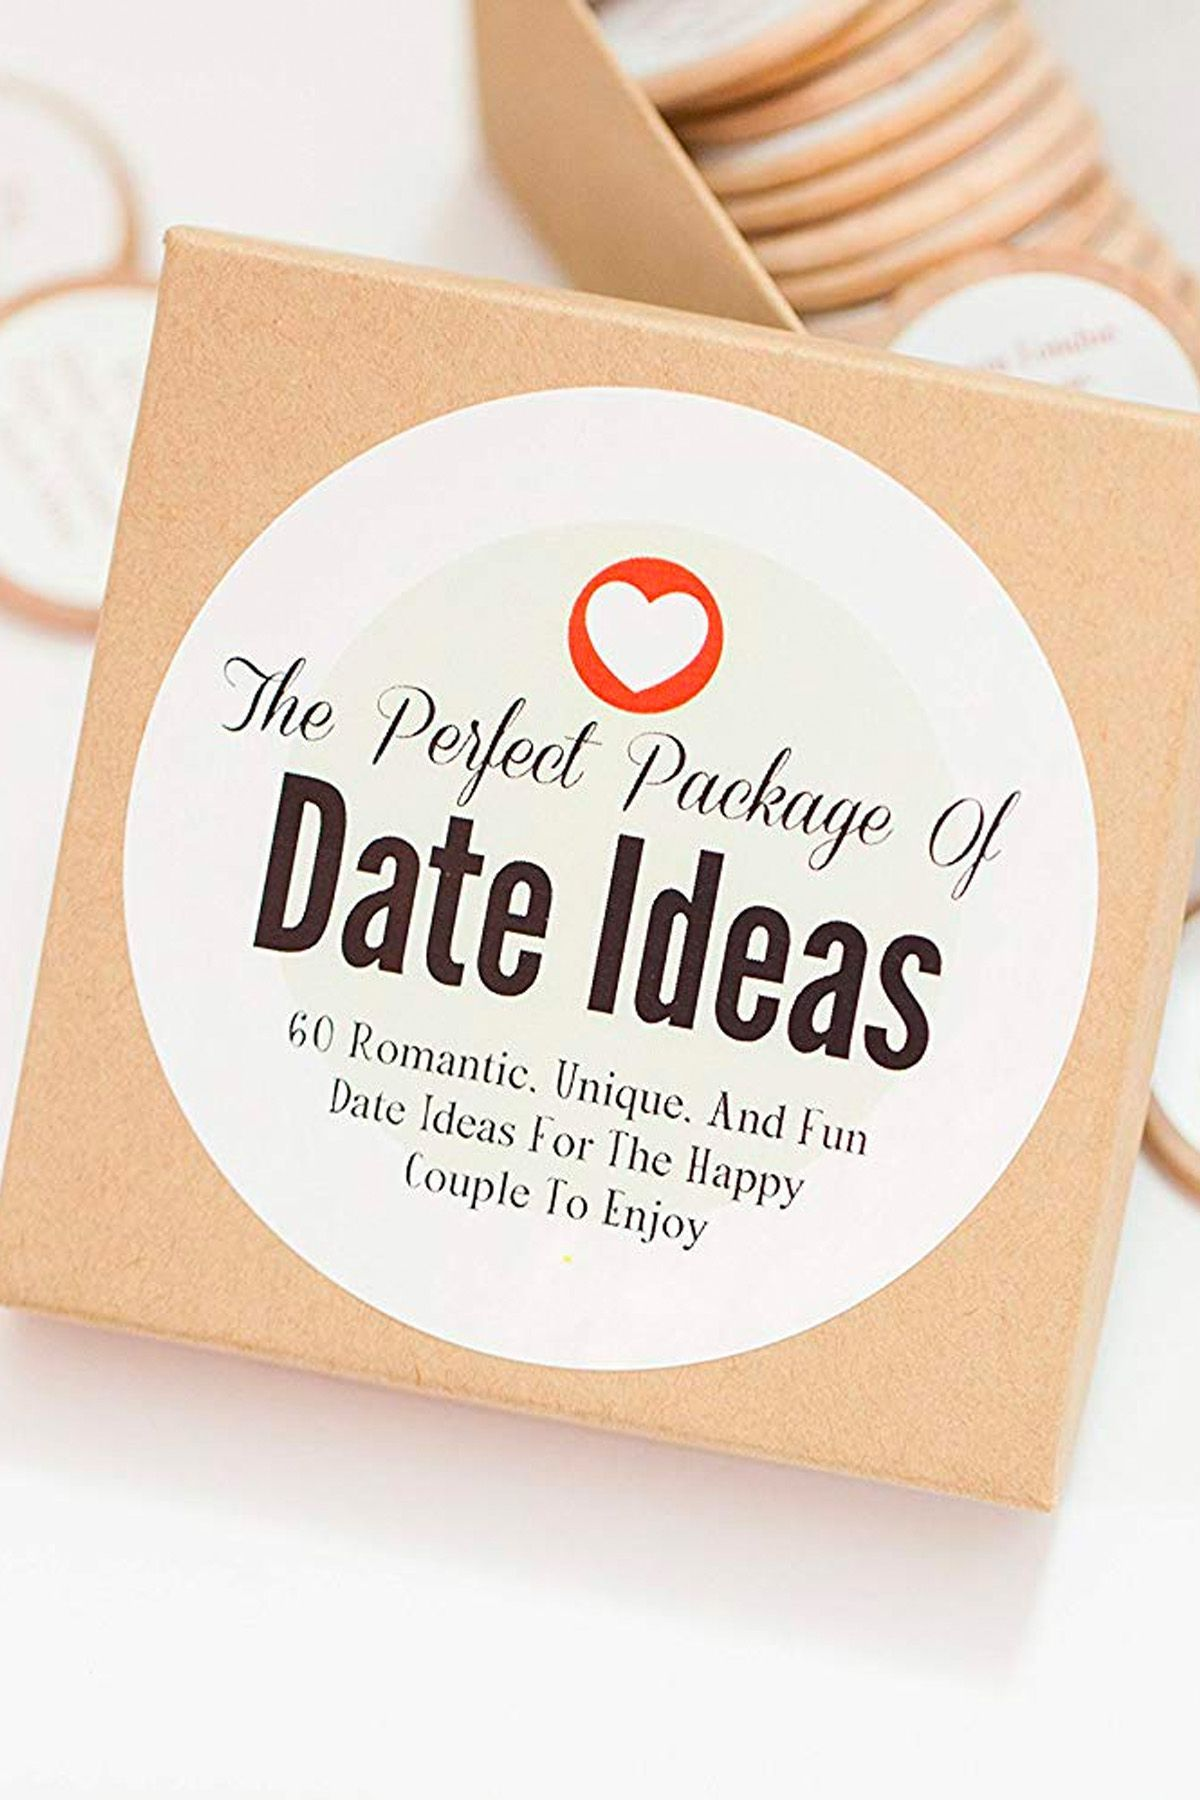 25 Best Couple Gift Ideas - Cute Christmas Presents for Married Couples